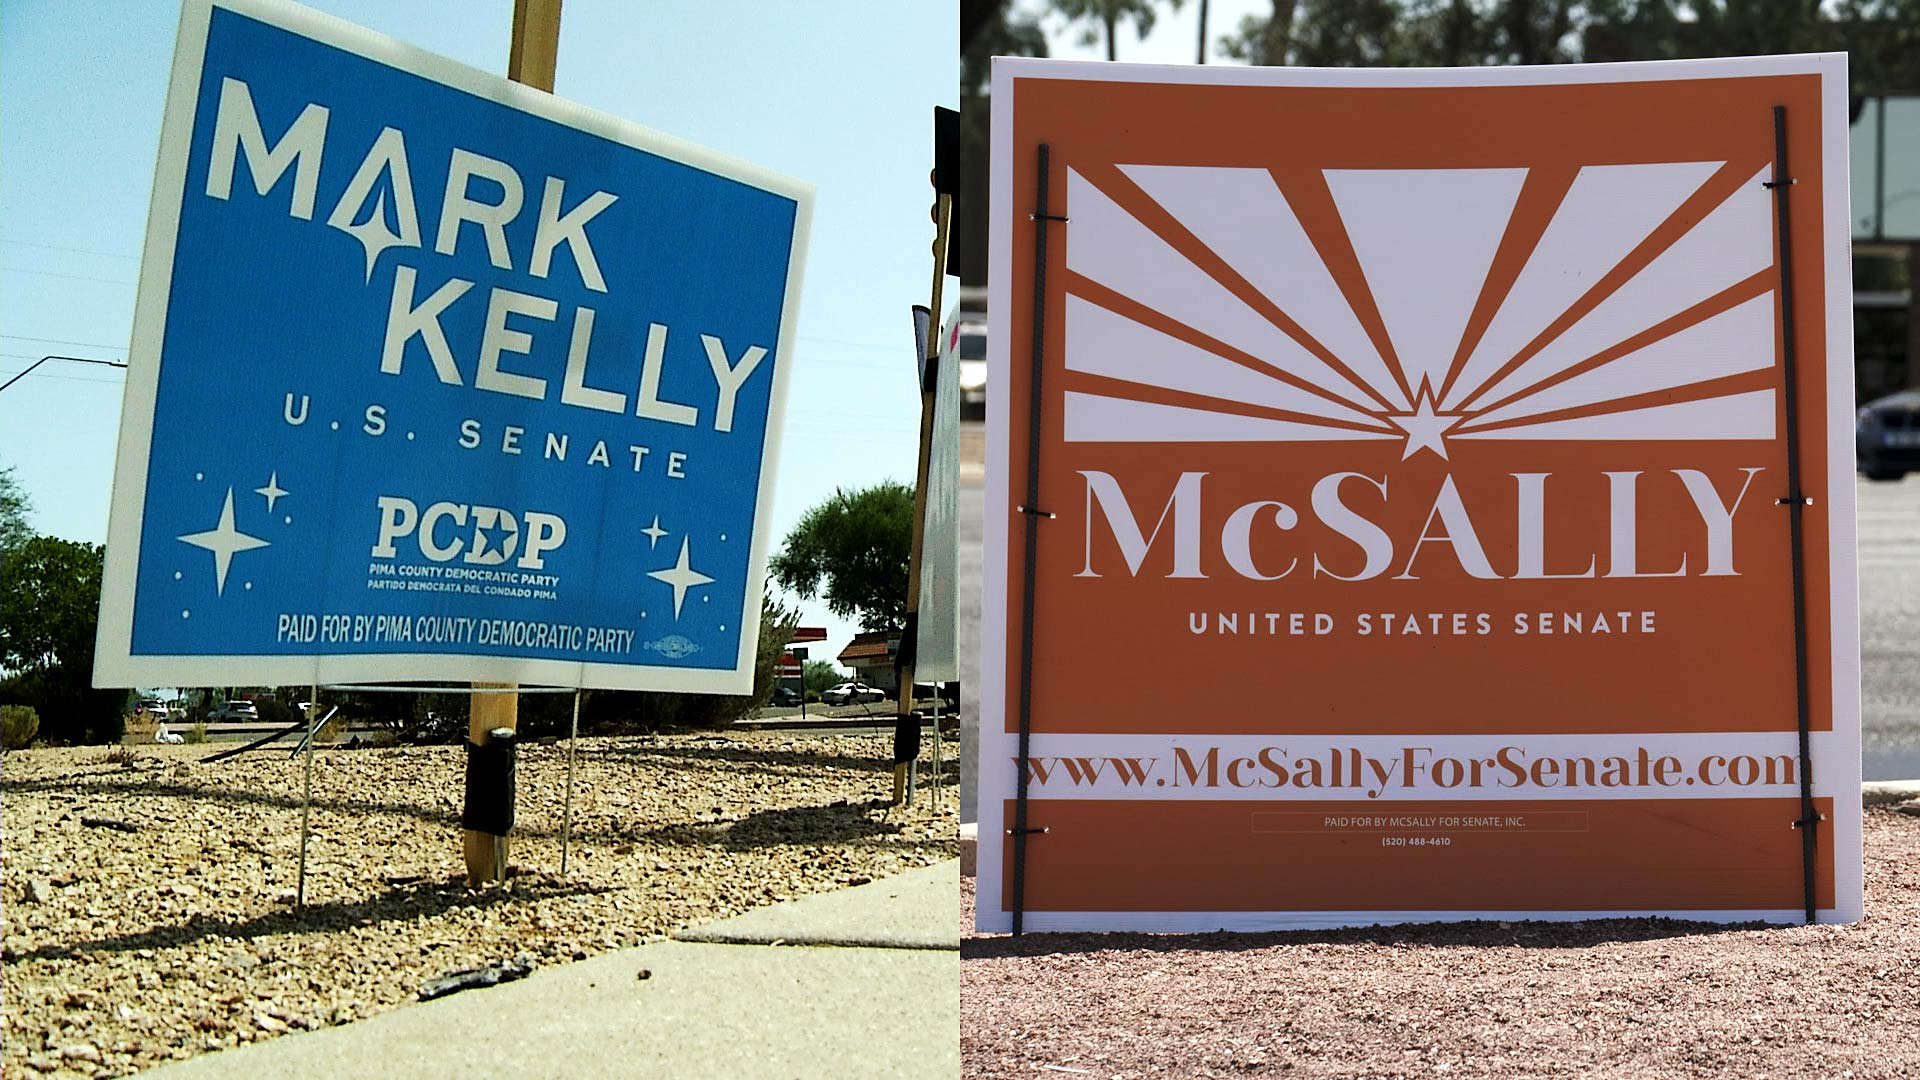 An image composite of campaign signs for U.S. Senate candidates Democrat Mark Kelly and Republican incumbent Martha McSally.